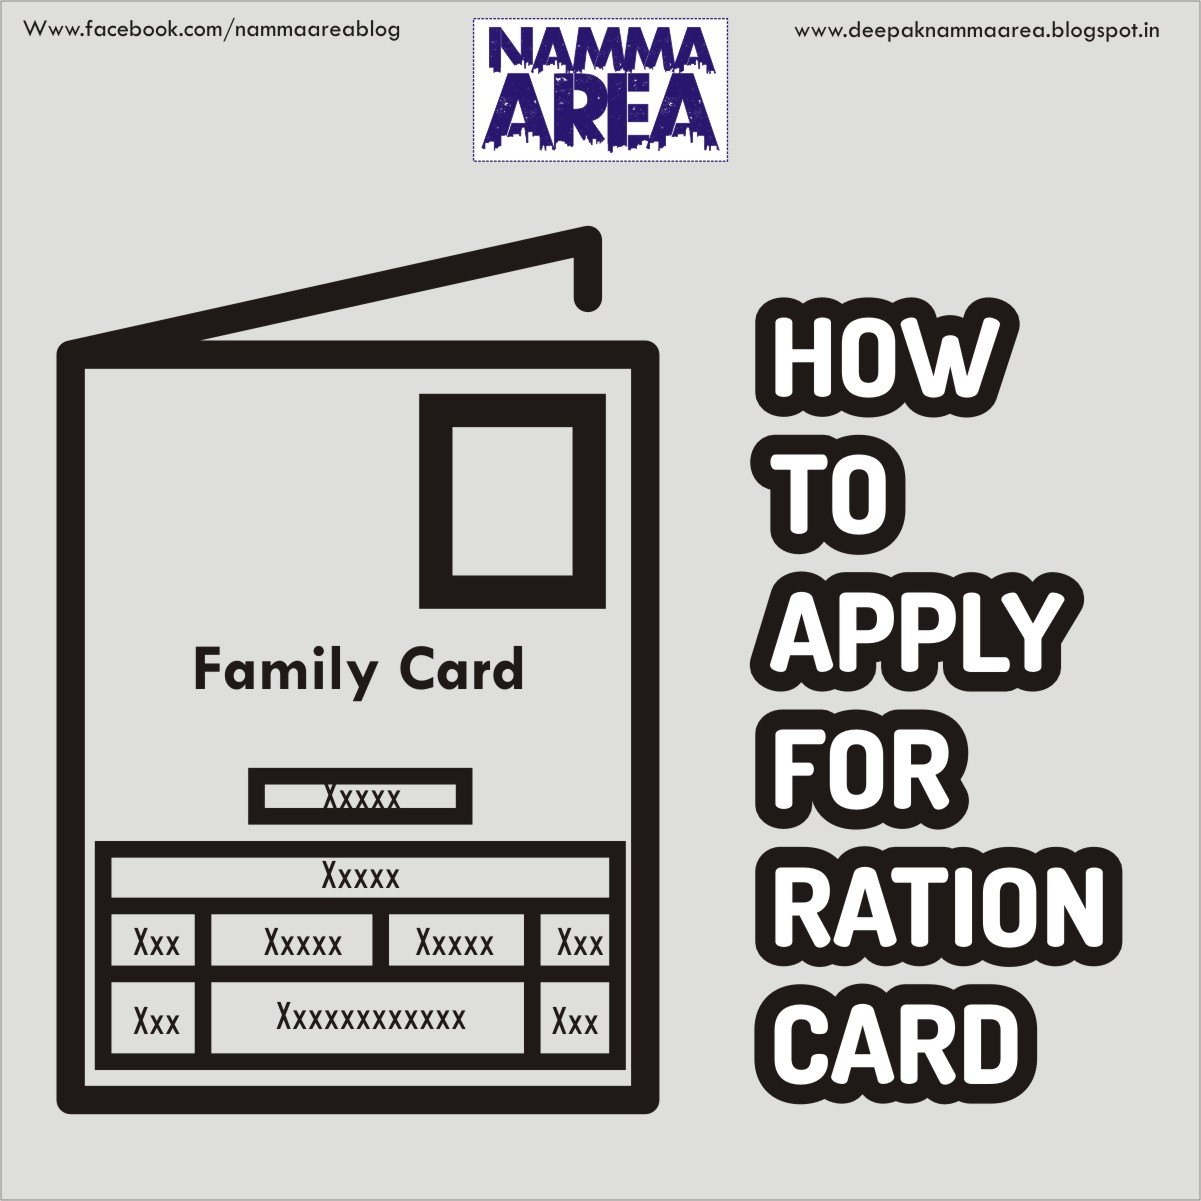 How to apply for ration card family card namma area how to apply for ration card family card aiddatafo Gallery